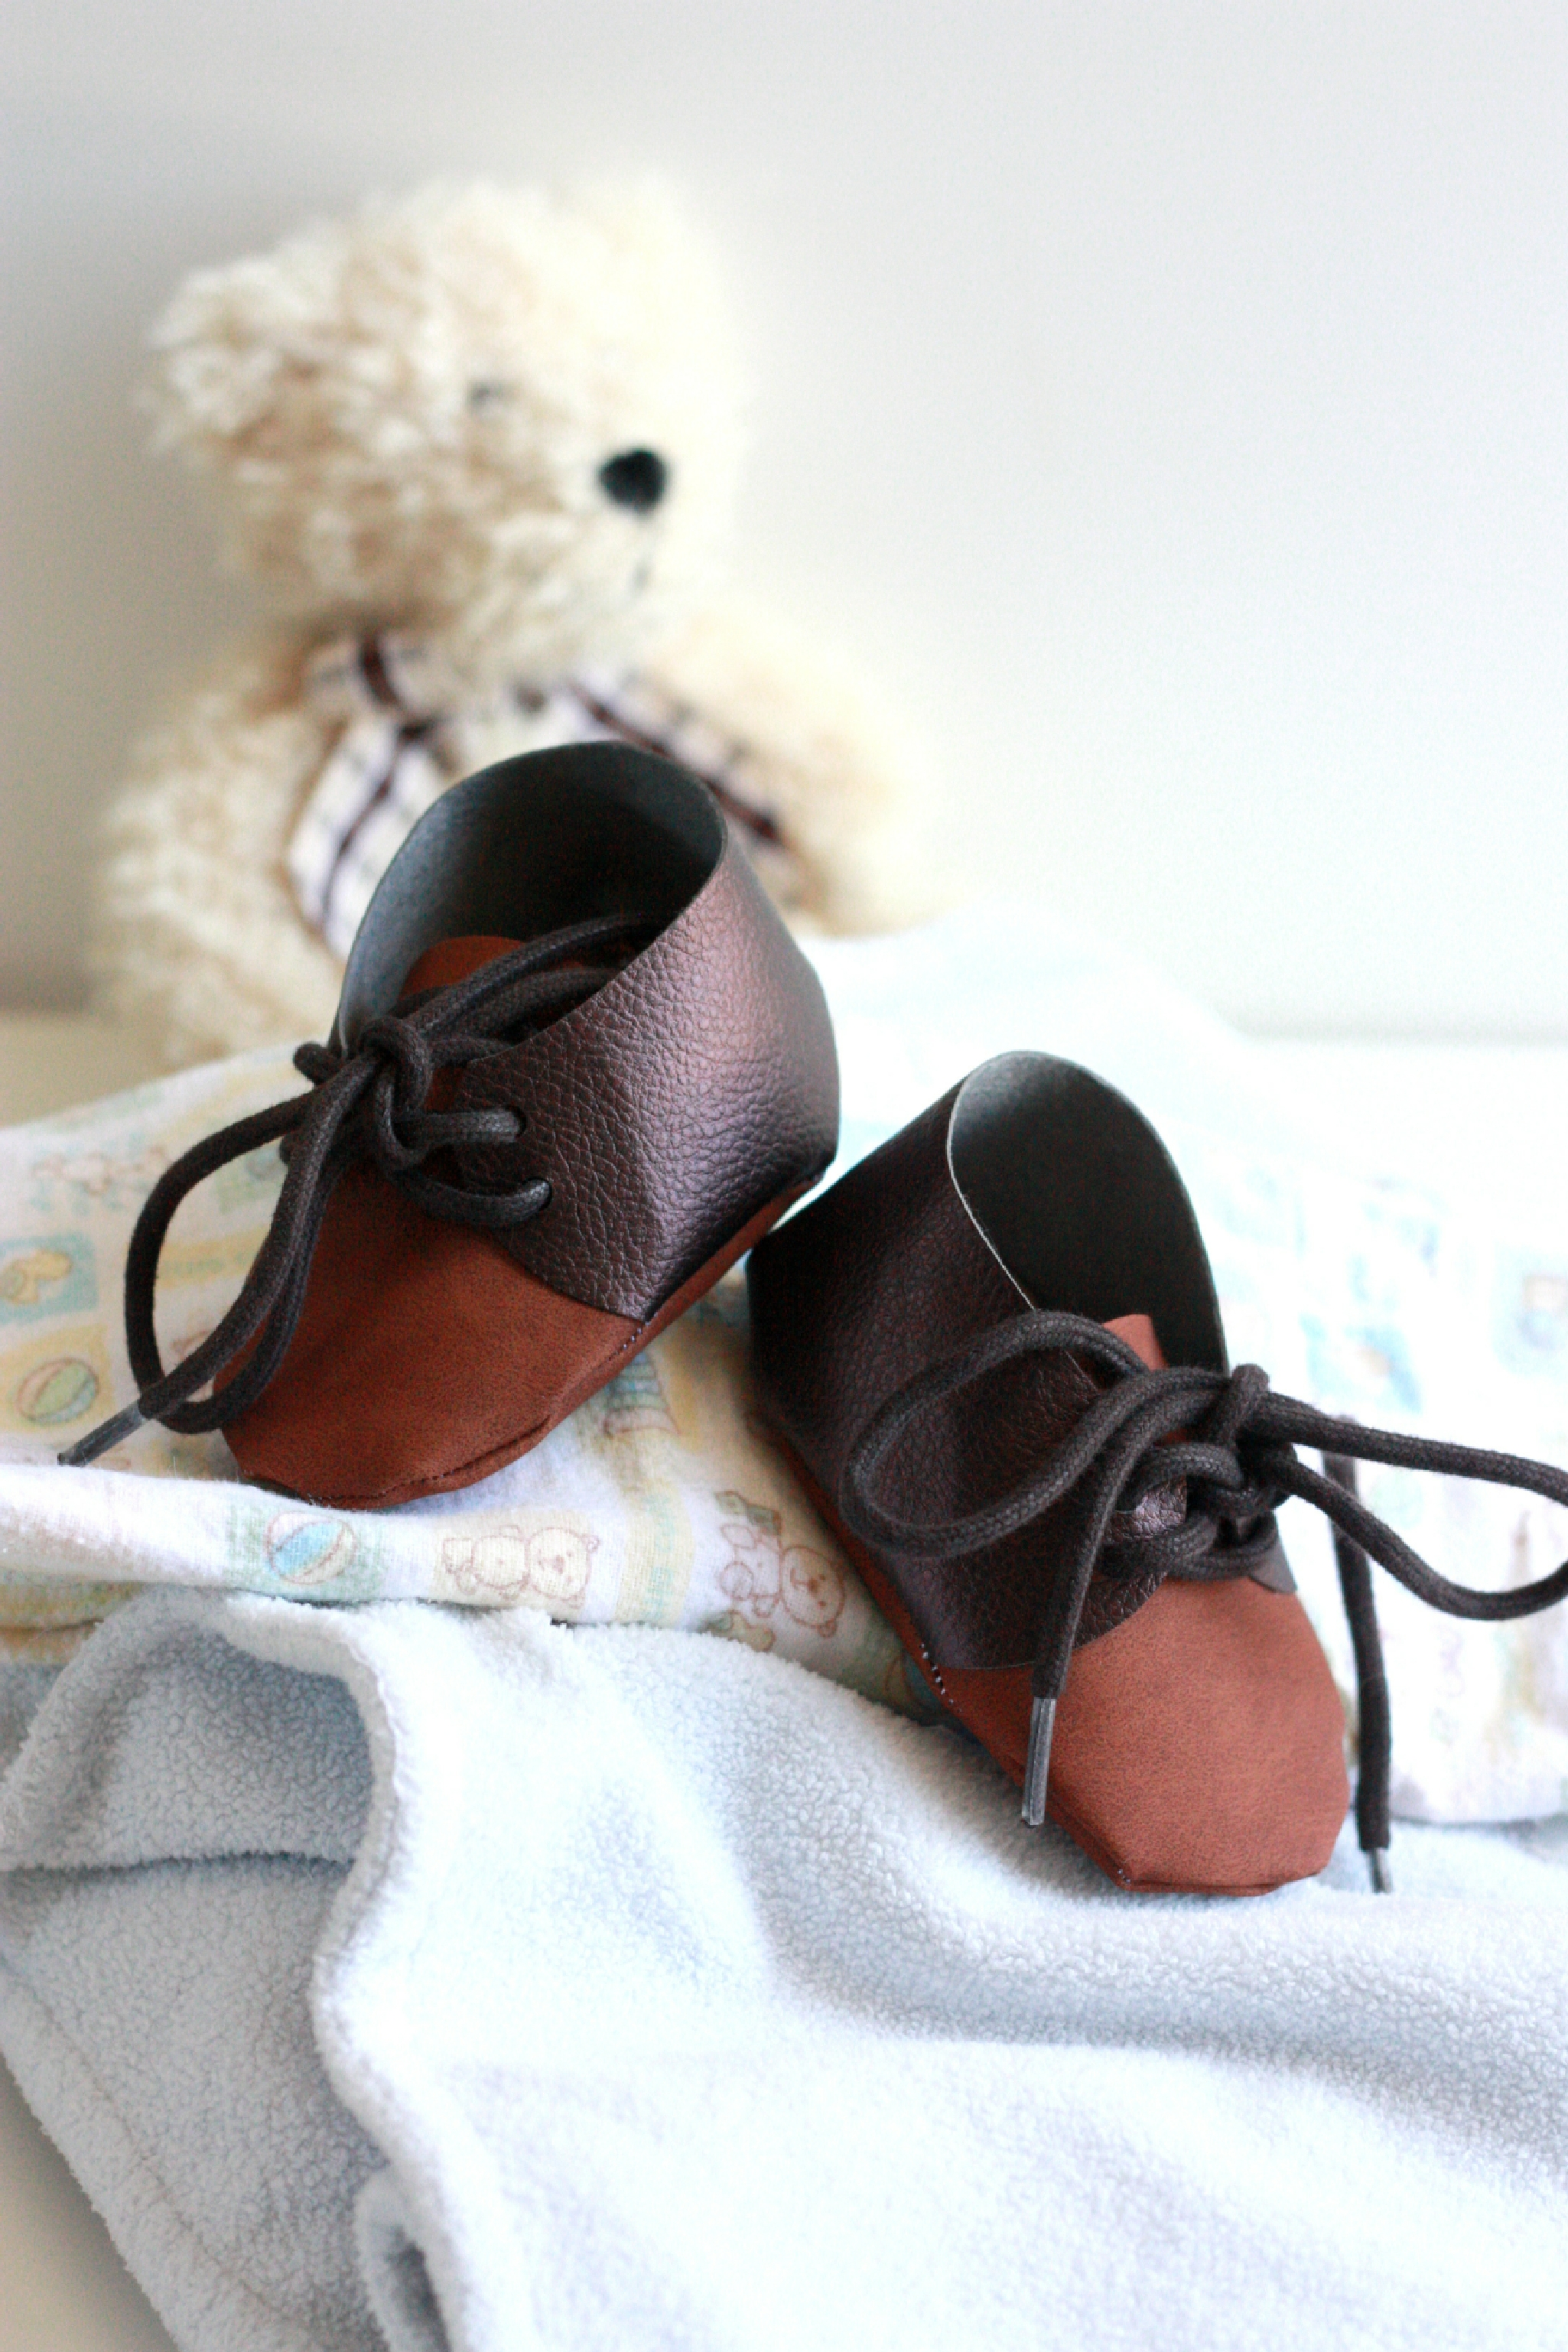 FAUX LEATHER BABY SHOES WITH CRICUT